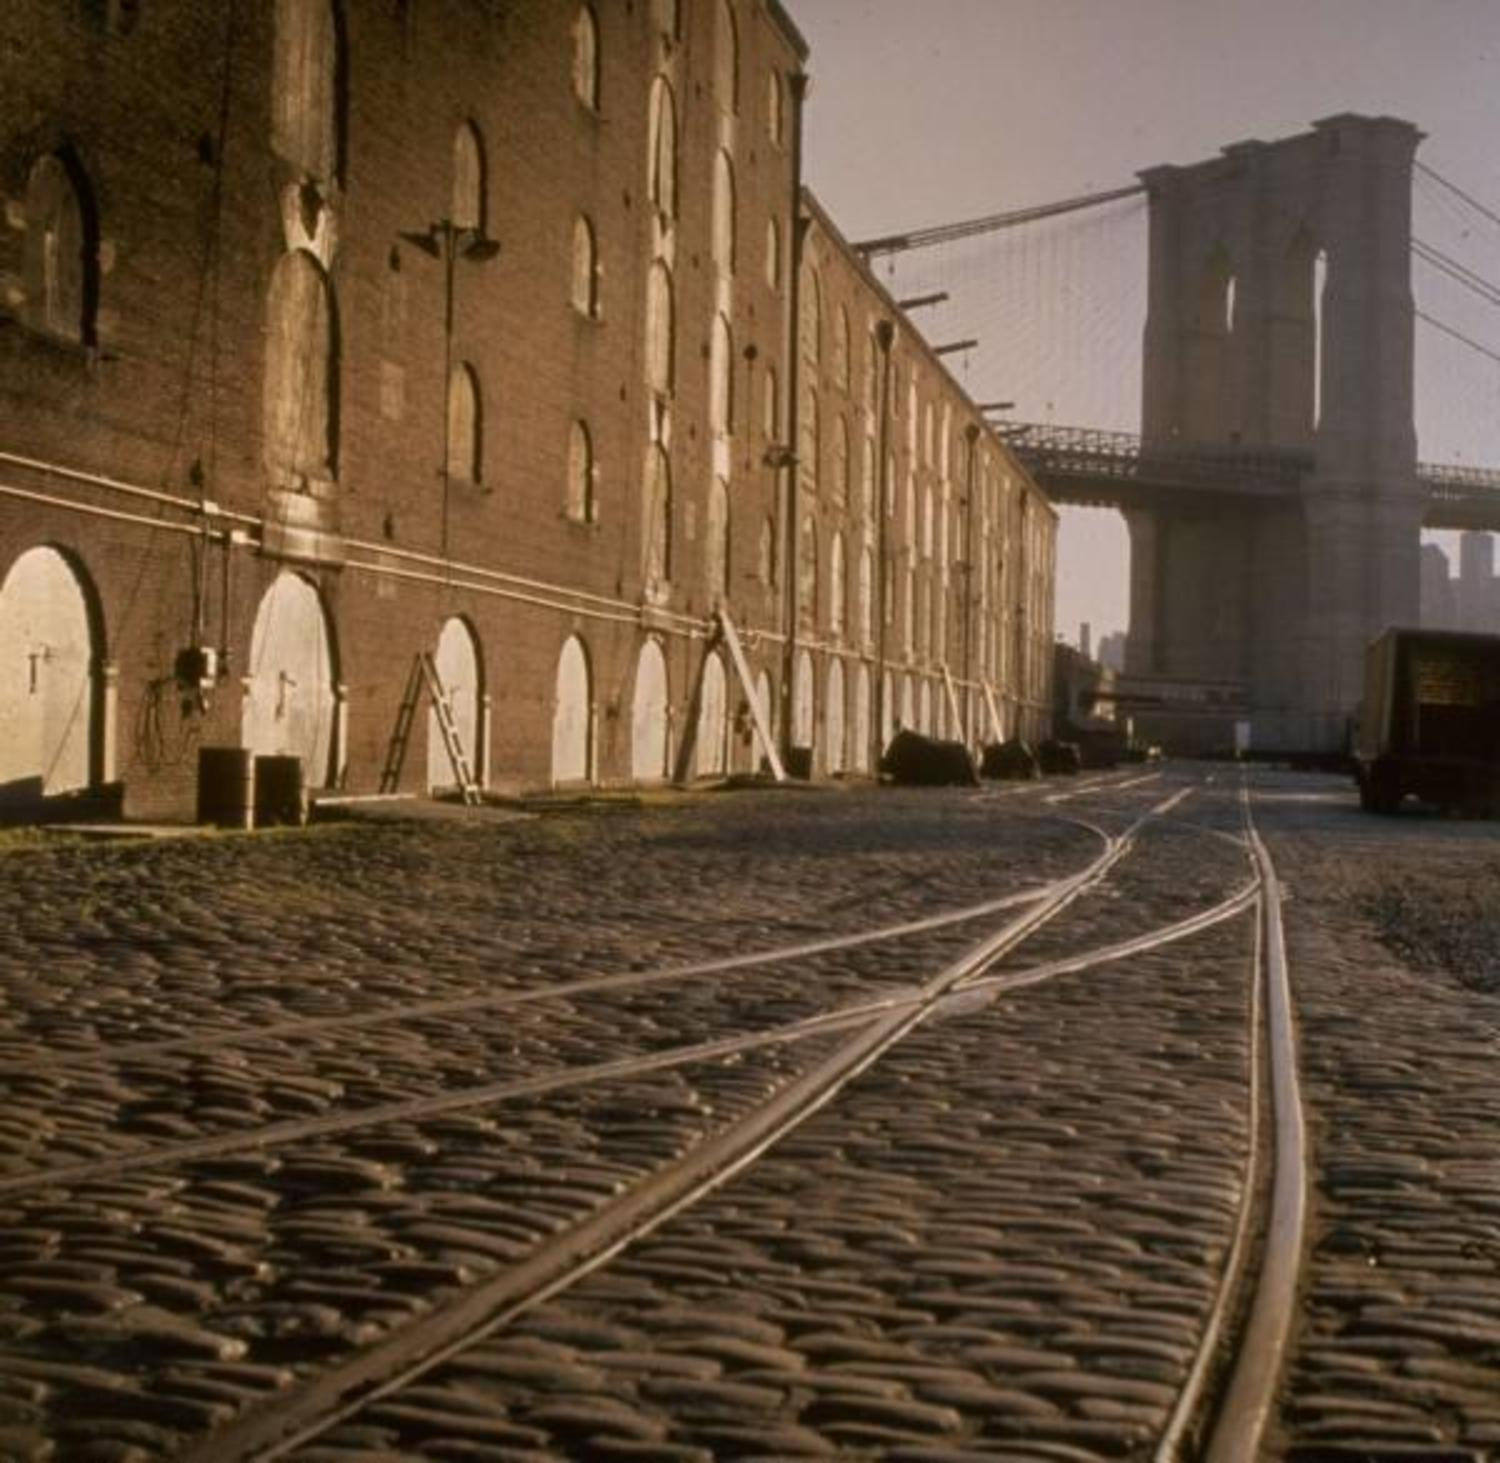 Brooklyn Staten Island Car: Vintage Photograph Shows Abandoned Dumbo Waterfront In